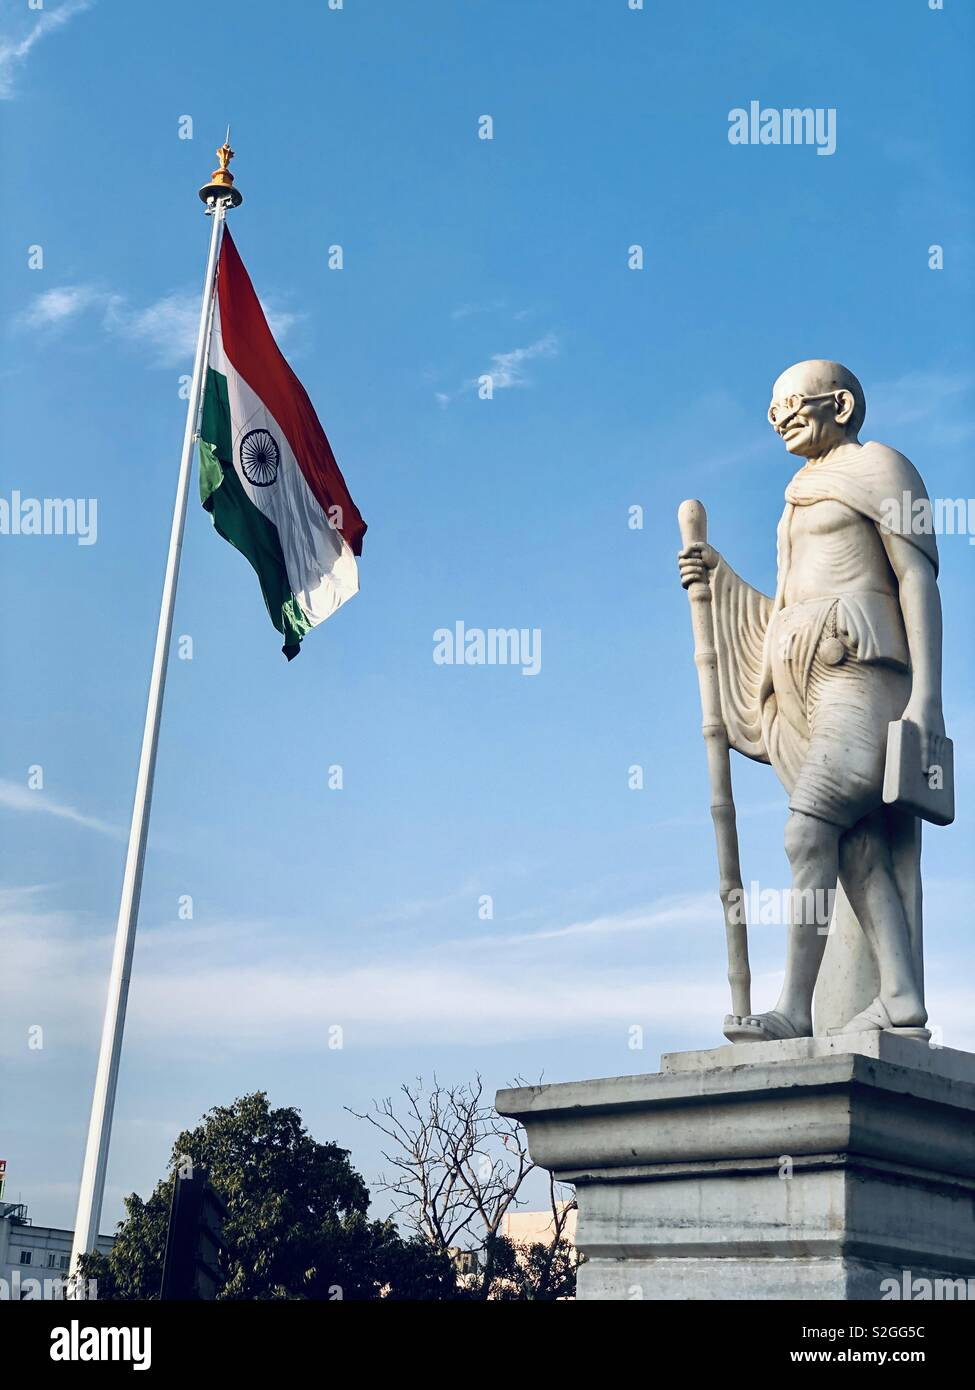 Statue of Mahatma Gandhi, the Father of indian nation and Indian National Flag - Stock Image